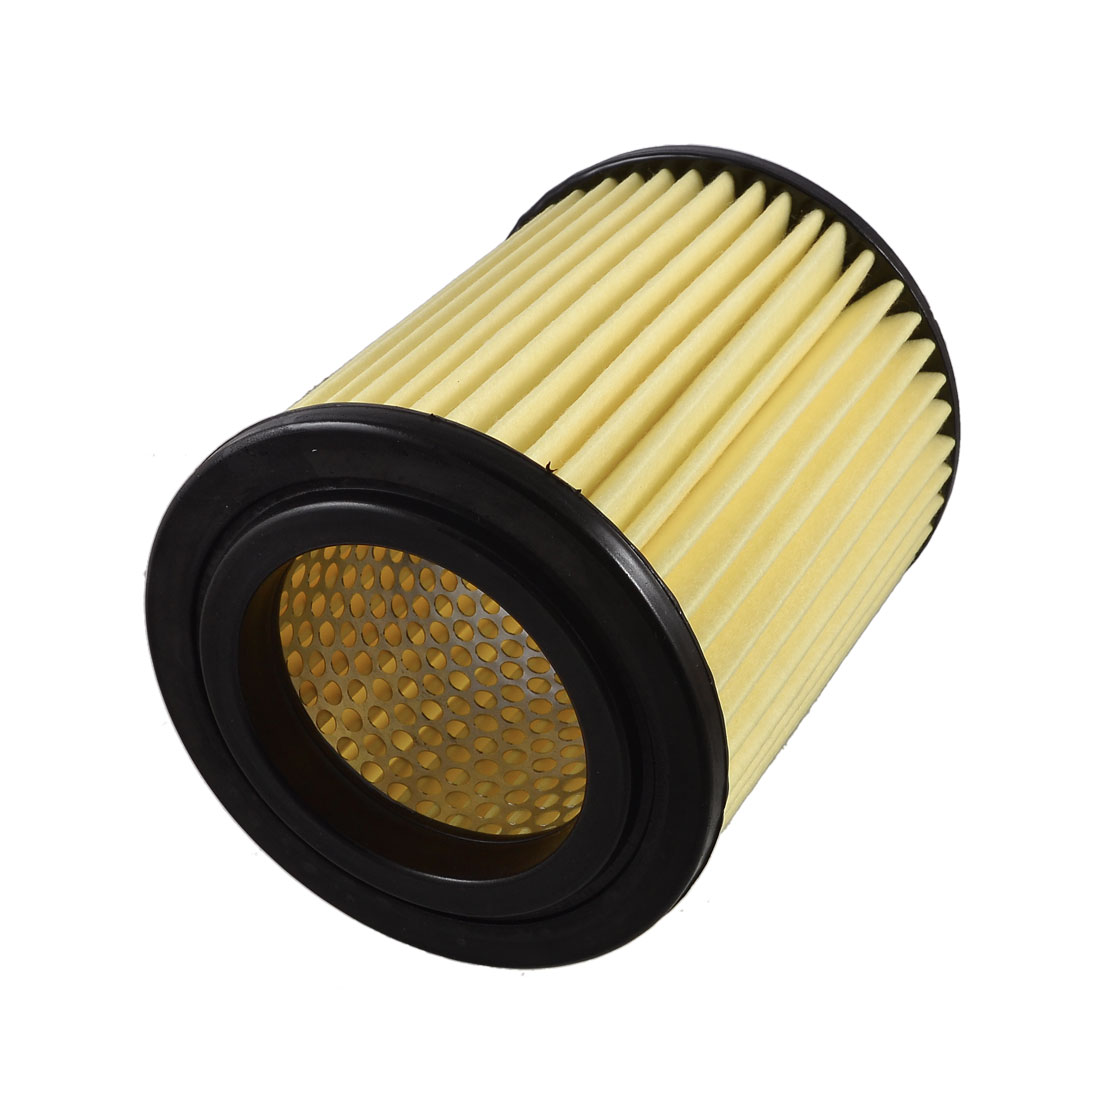 "Car Truck Paper Air Filter 5.5"" x 6.7"" 17220-PNB-Y01 Replacement"